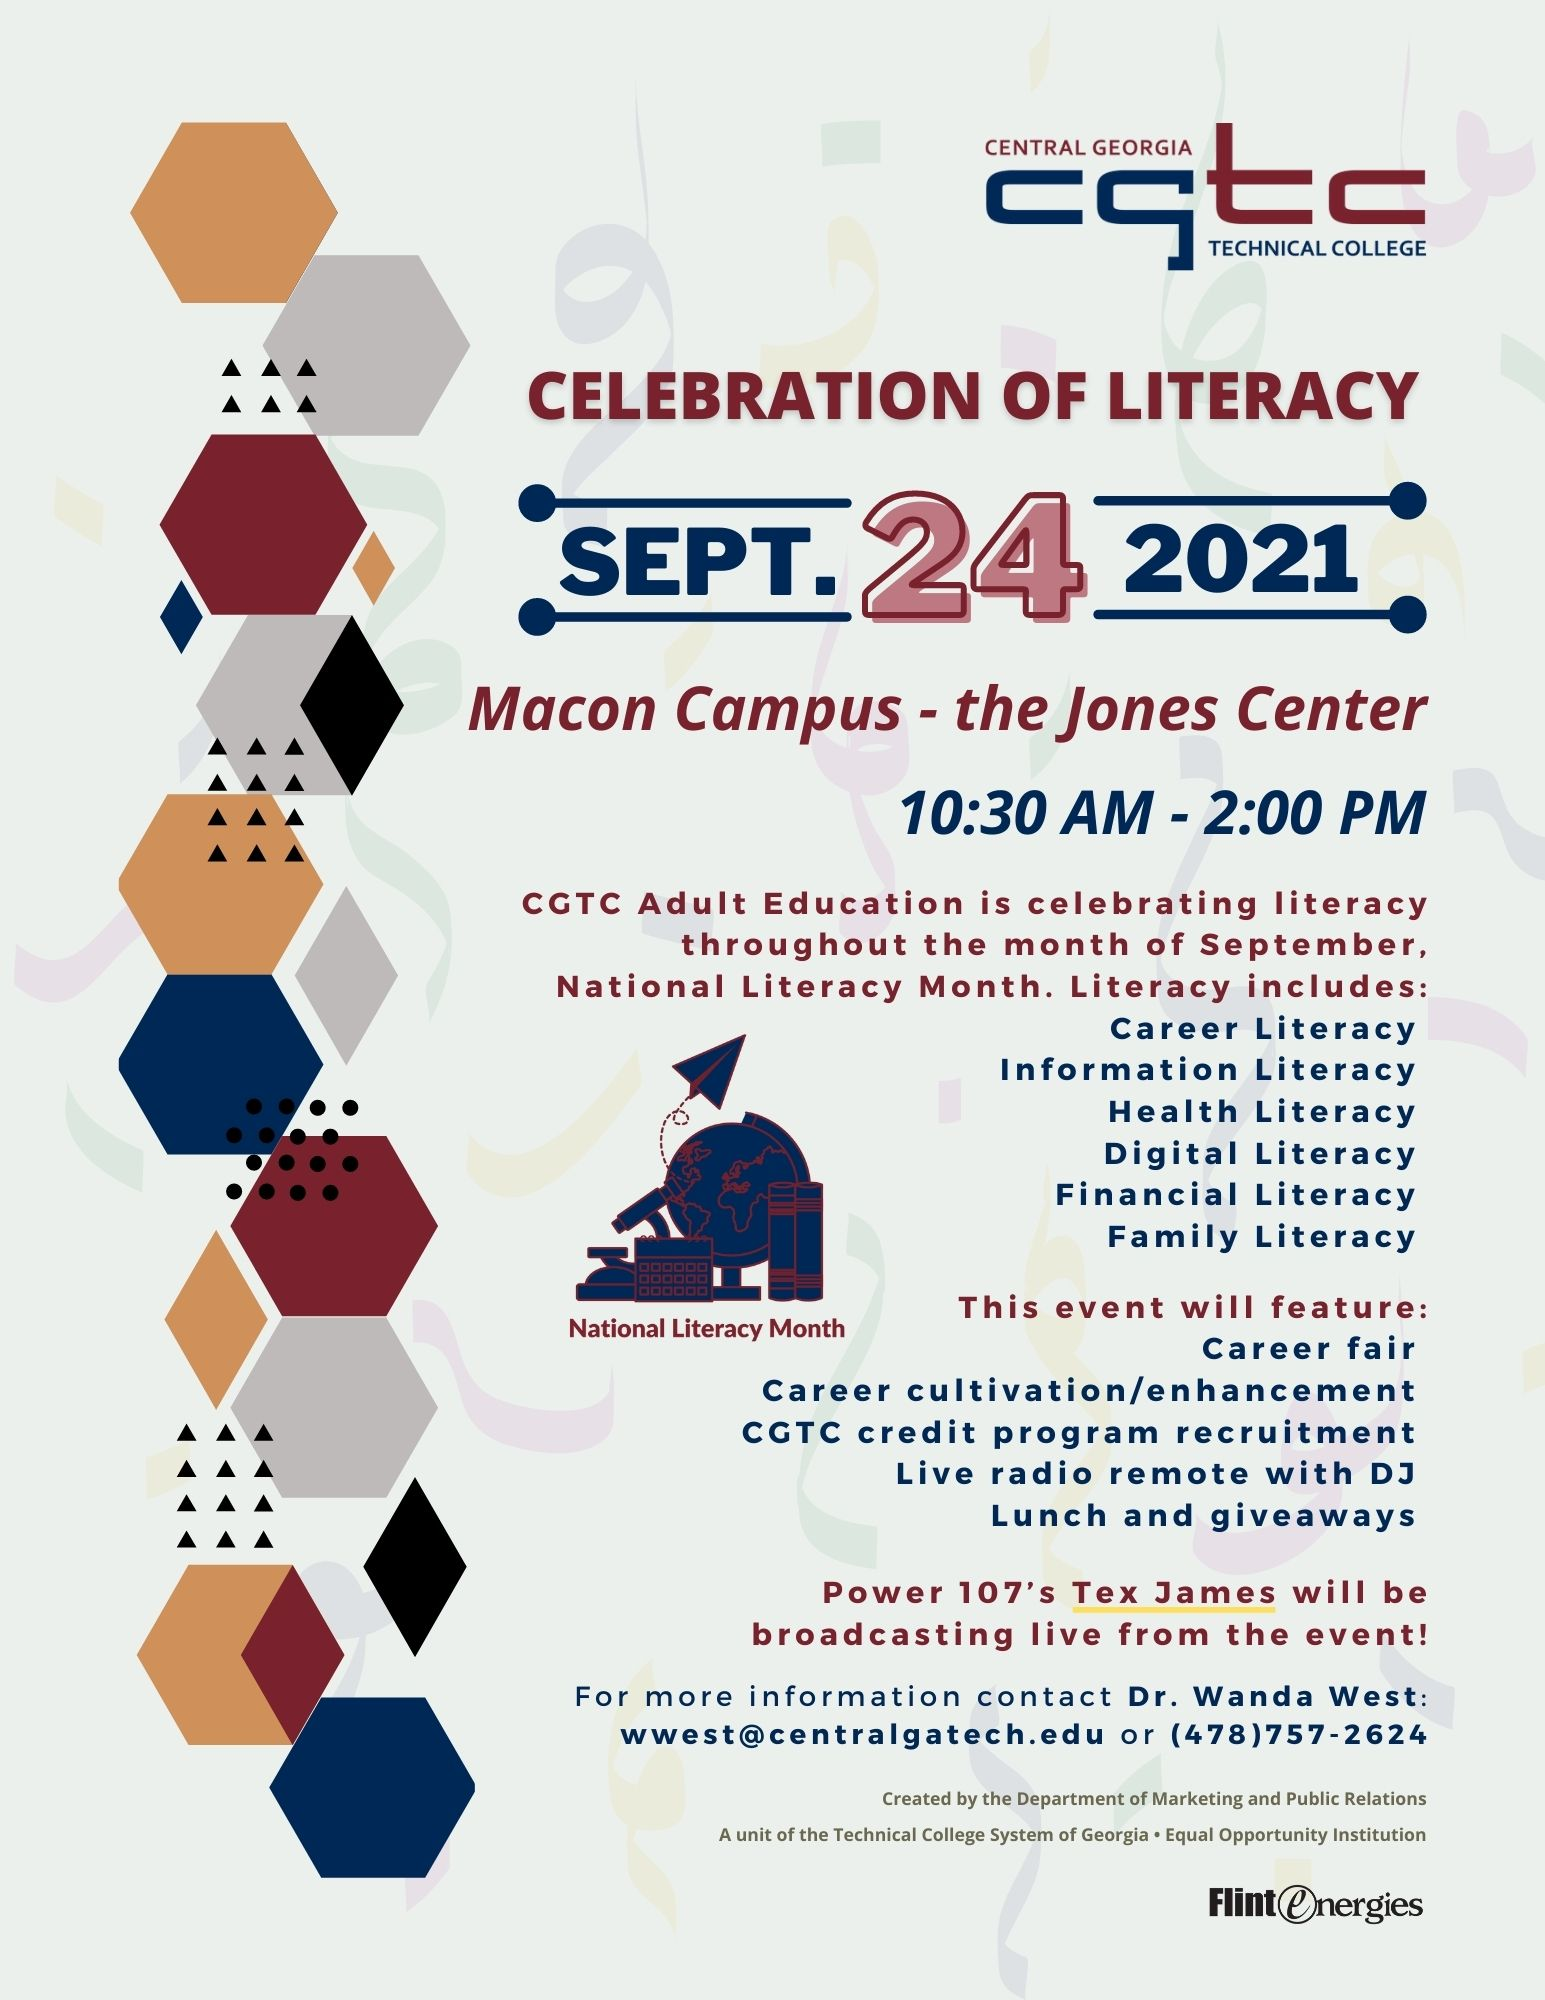 The Central Georgia Technical College (CGTC) Adult Education Division (AED) is celebrating National Literacy Month with its Celebration of Literacy event on September 24, 2021 at the Jones Center of the College's Macon Campus on 3300 Macon Tech Dr., from 10:30 a.m. to 2:00 p.m.